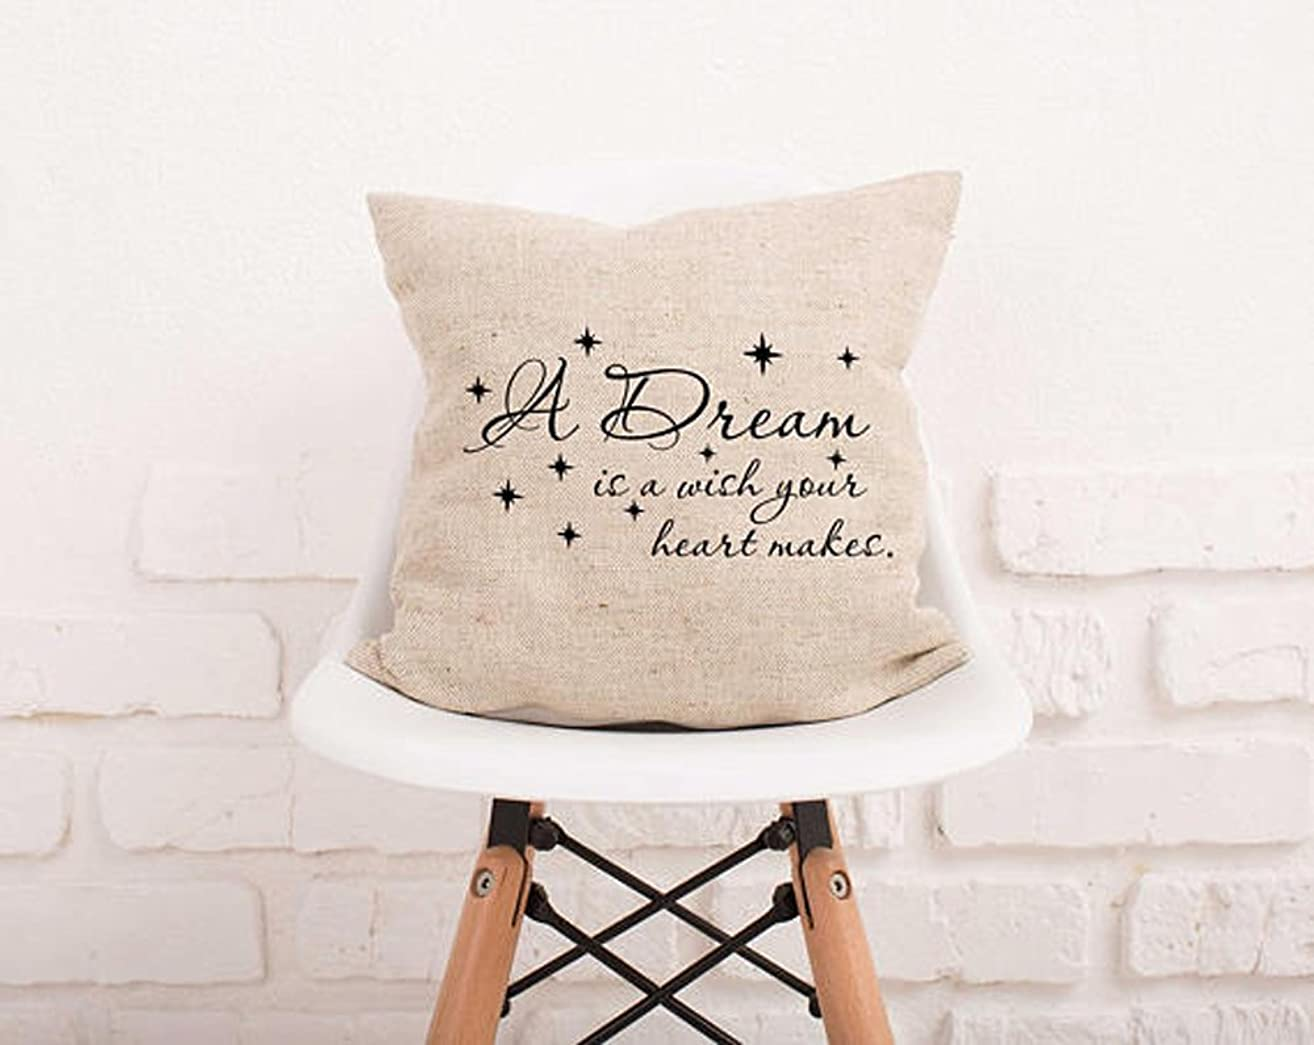 High quality A Dream Is A Wish Your Heart Makes Pillow Cover Stars Pillowcase Decorative Pillow Nursery Decor Kids Pillowcase Natural Burlap Nursery